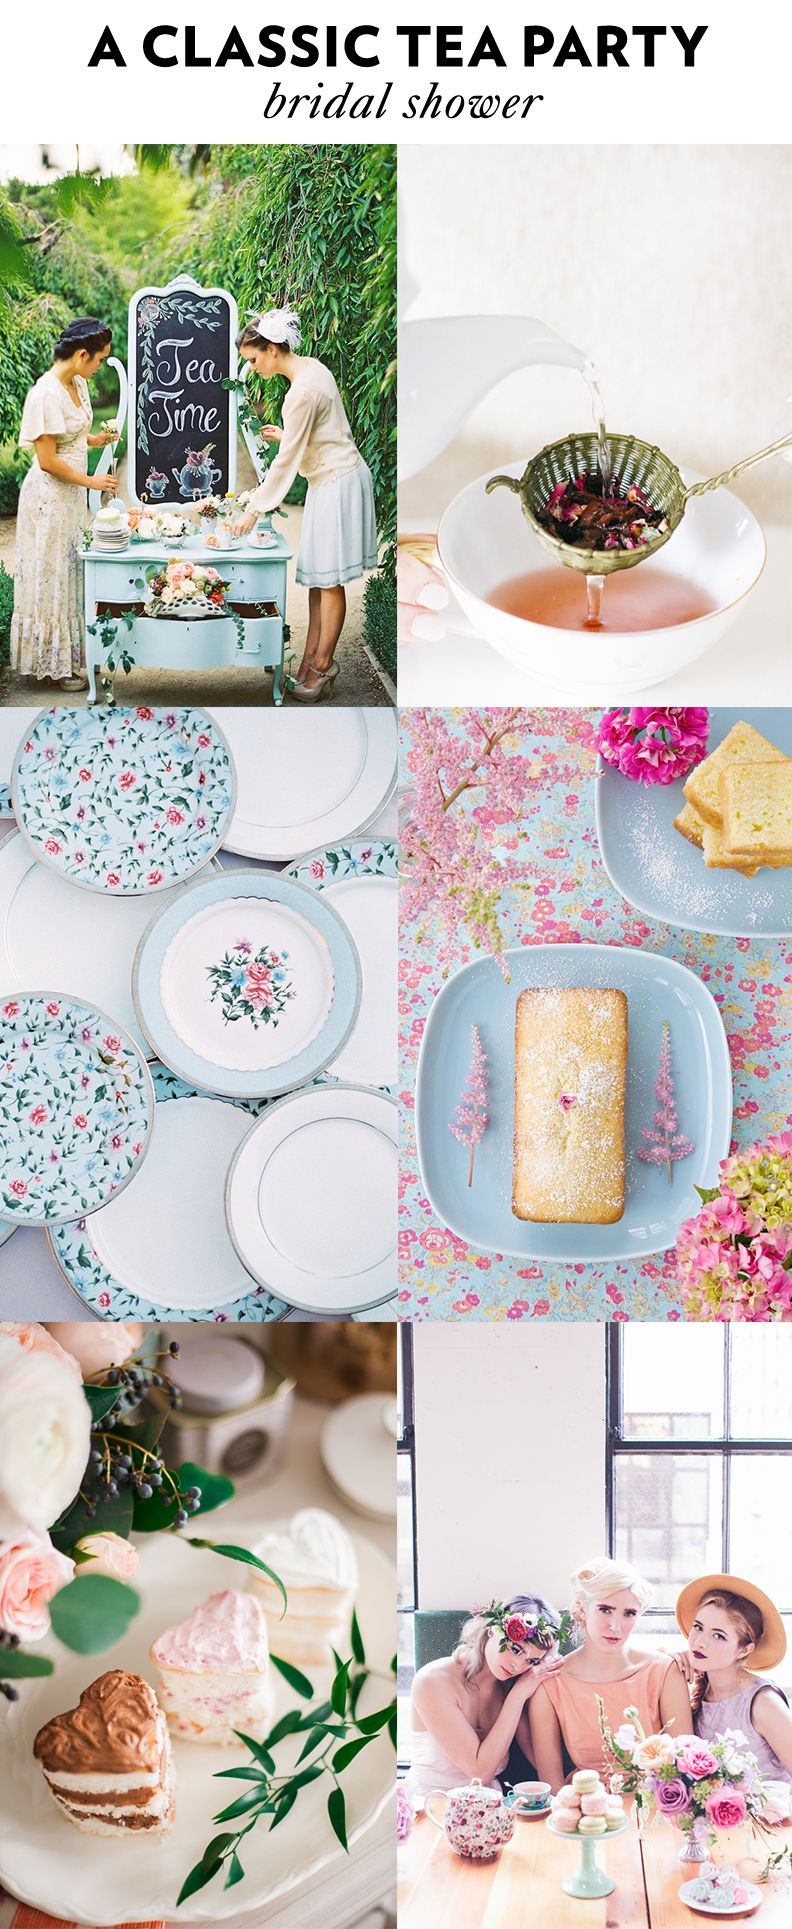 4 tea party bridal shower themes